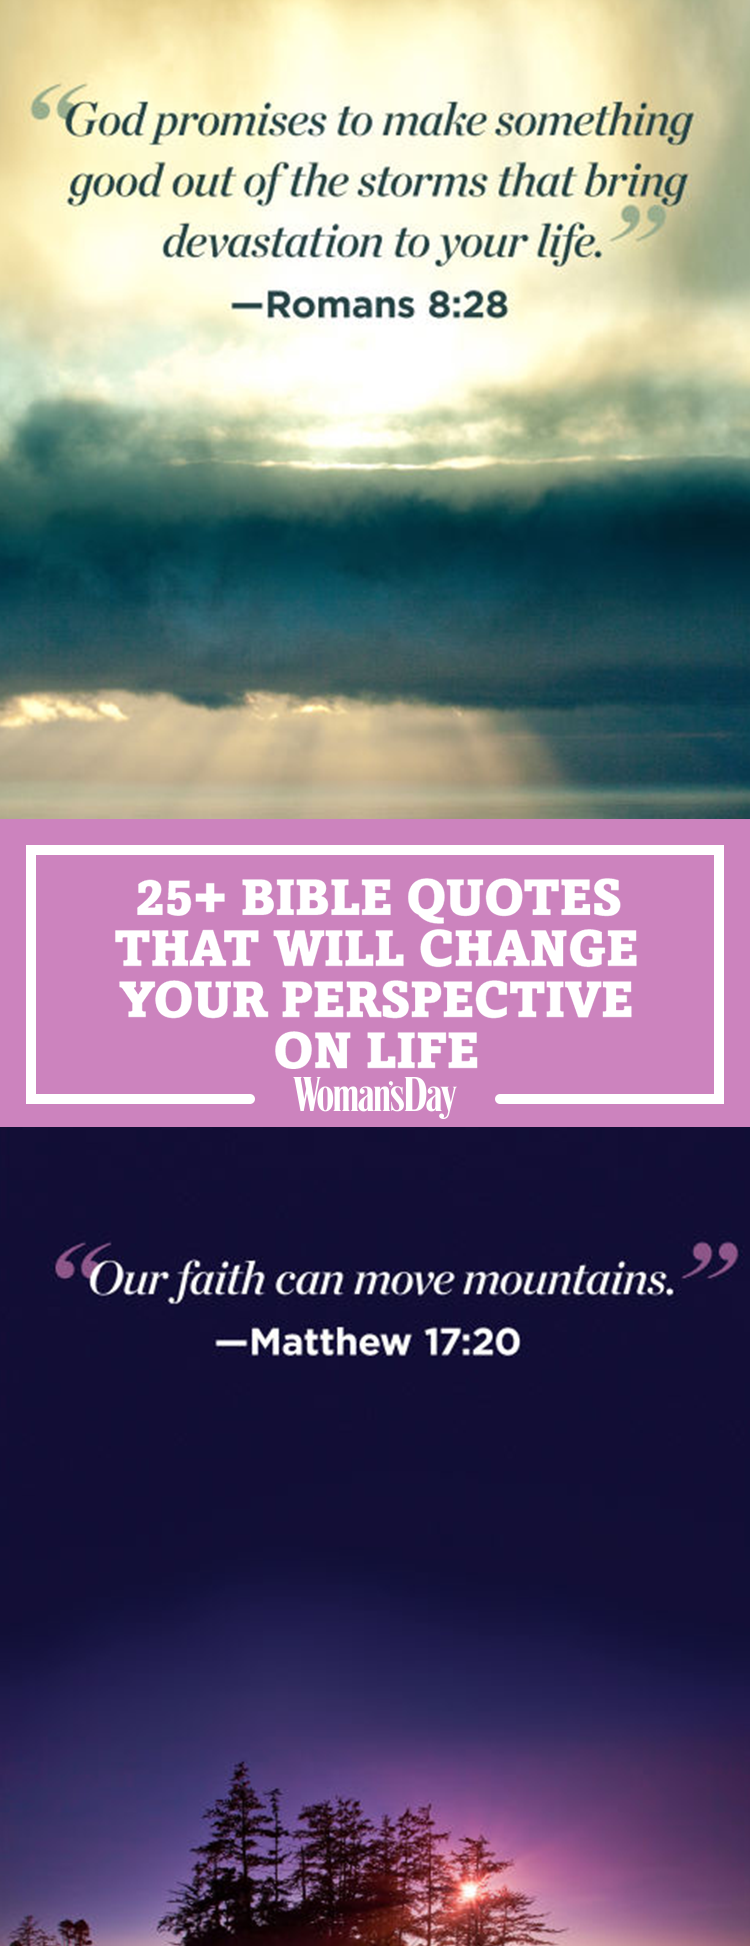 Good Bible Quotes 30 Inspirational Bible Quotes About Life   Scripture Verses of the Day Good Bible Quotes